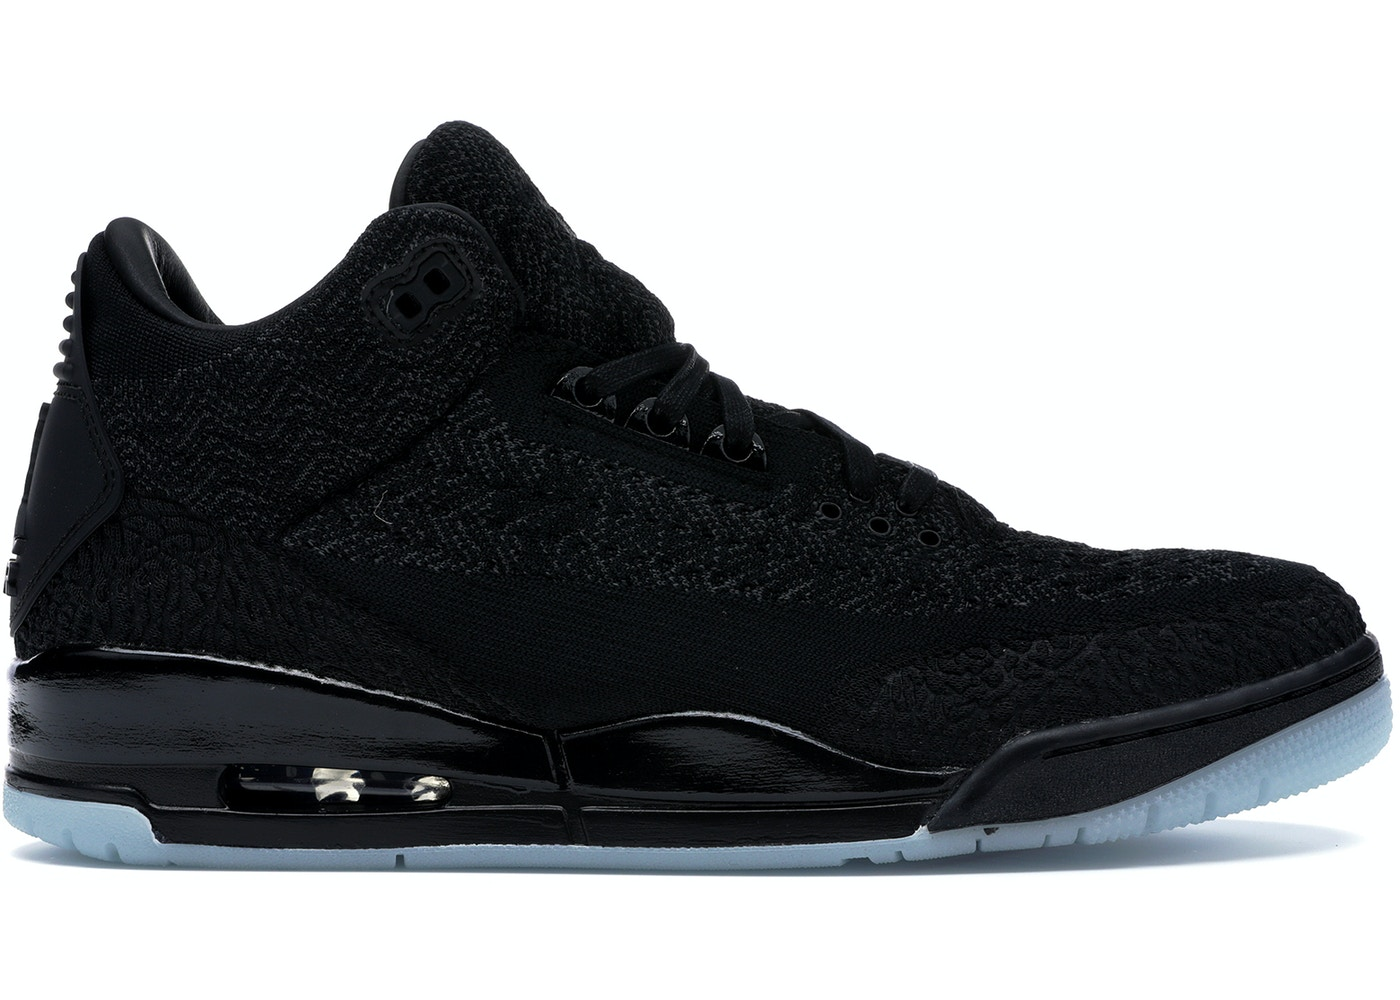 check out 789f8 56a38 Jordan 3 Retro Flyknit Black - AQ1005-001